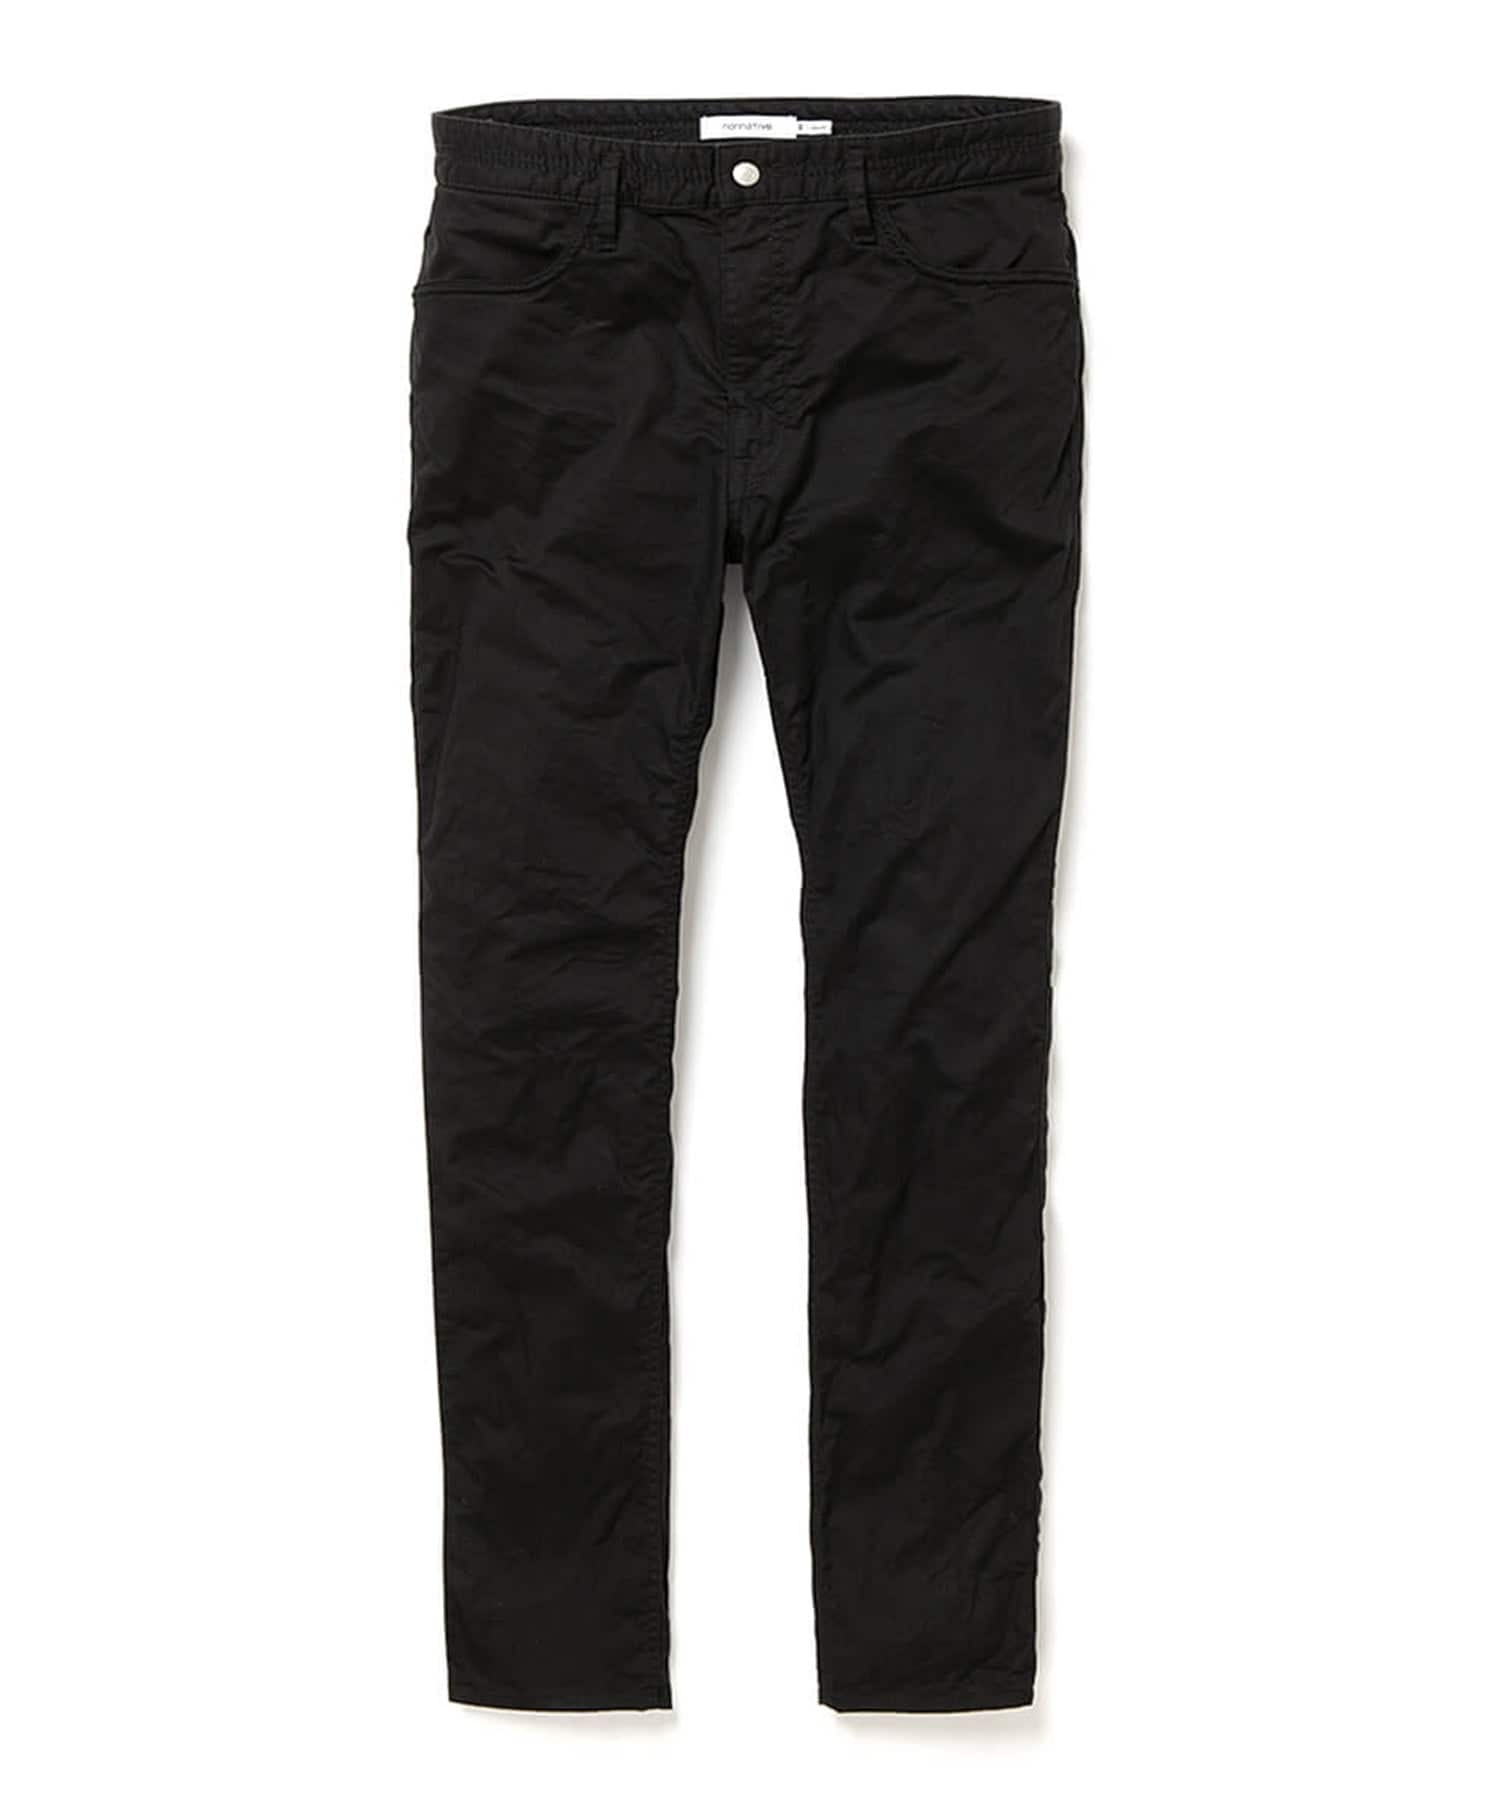 DWELLER 4P JEANS TAPERED FIT